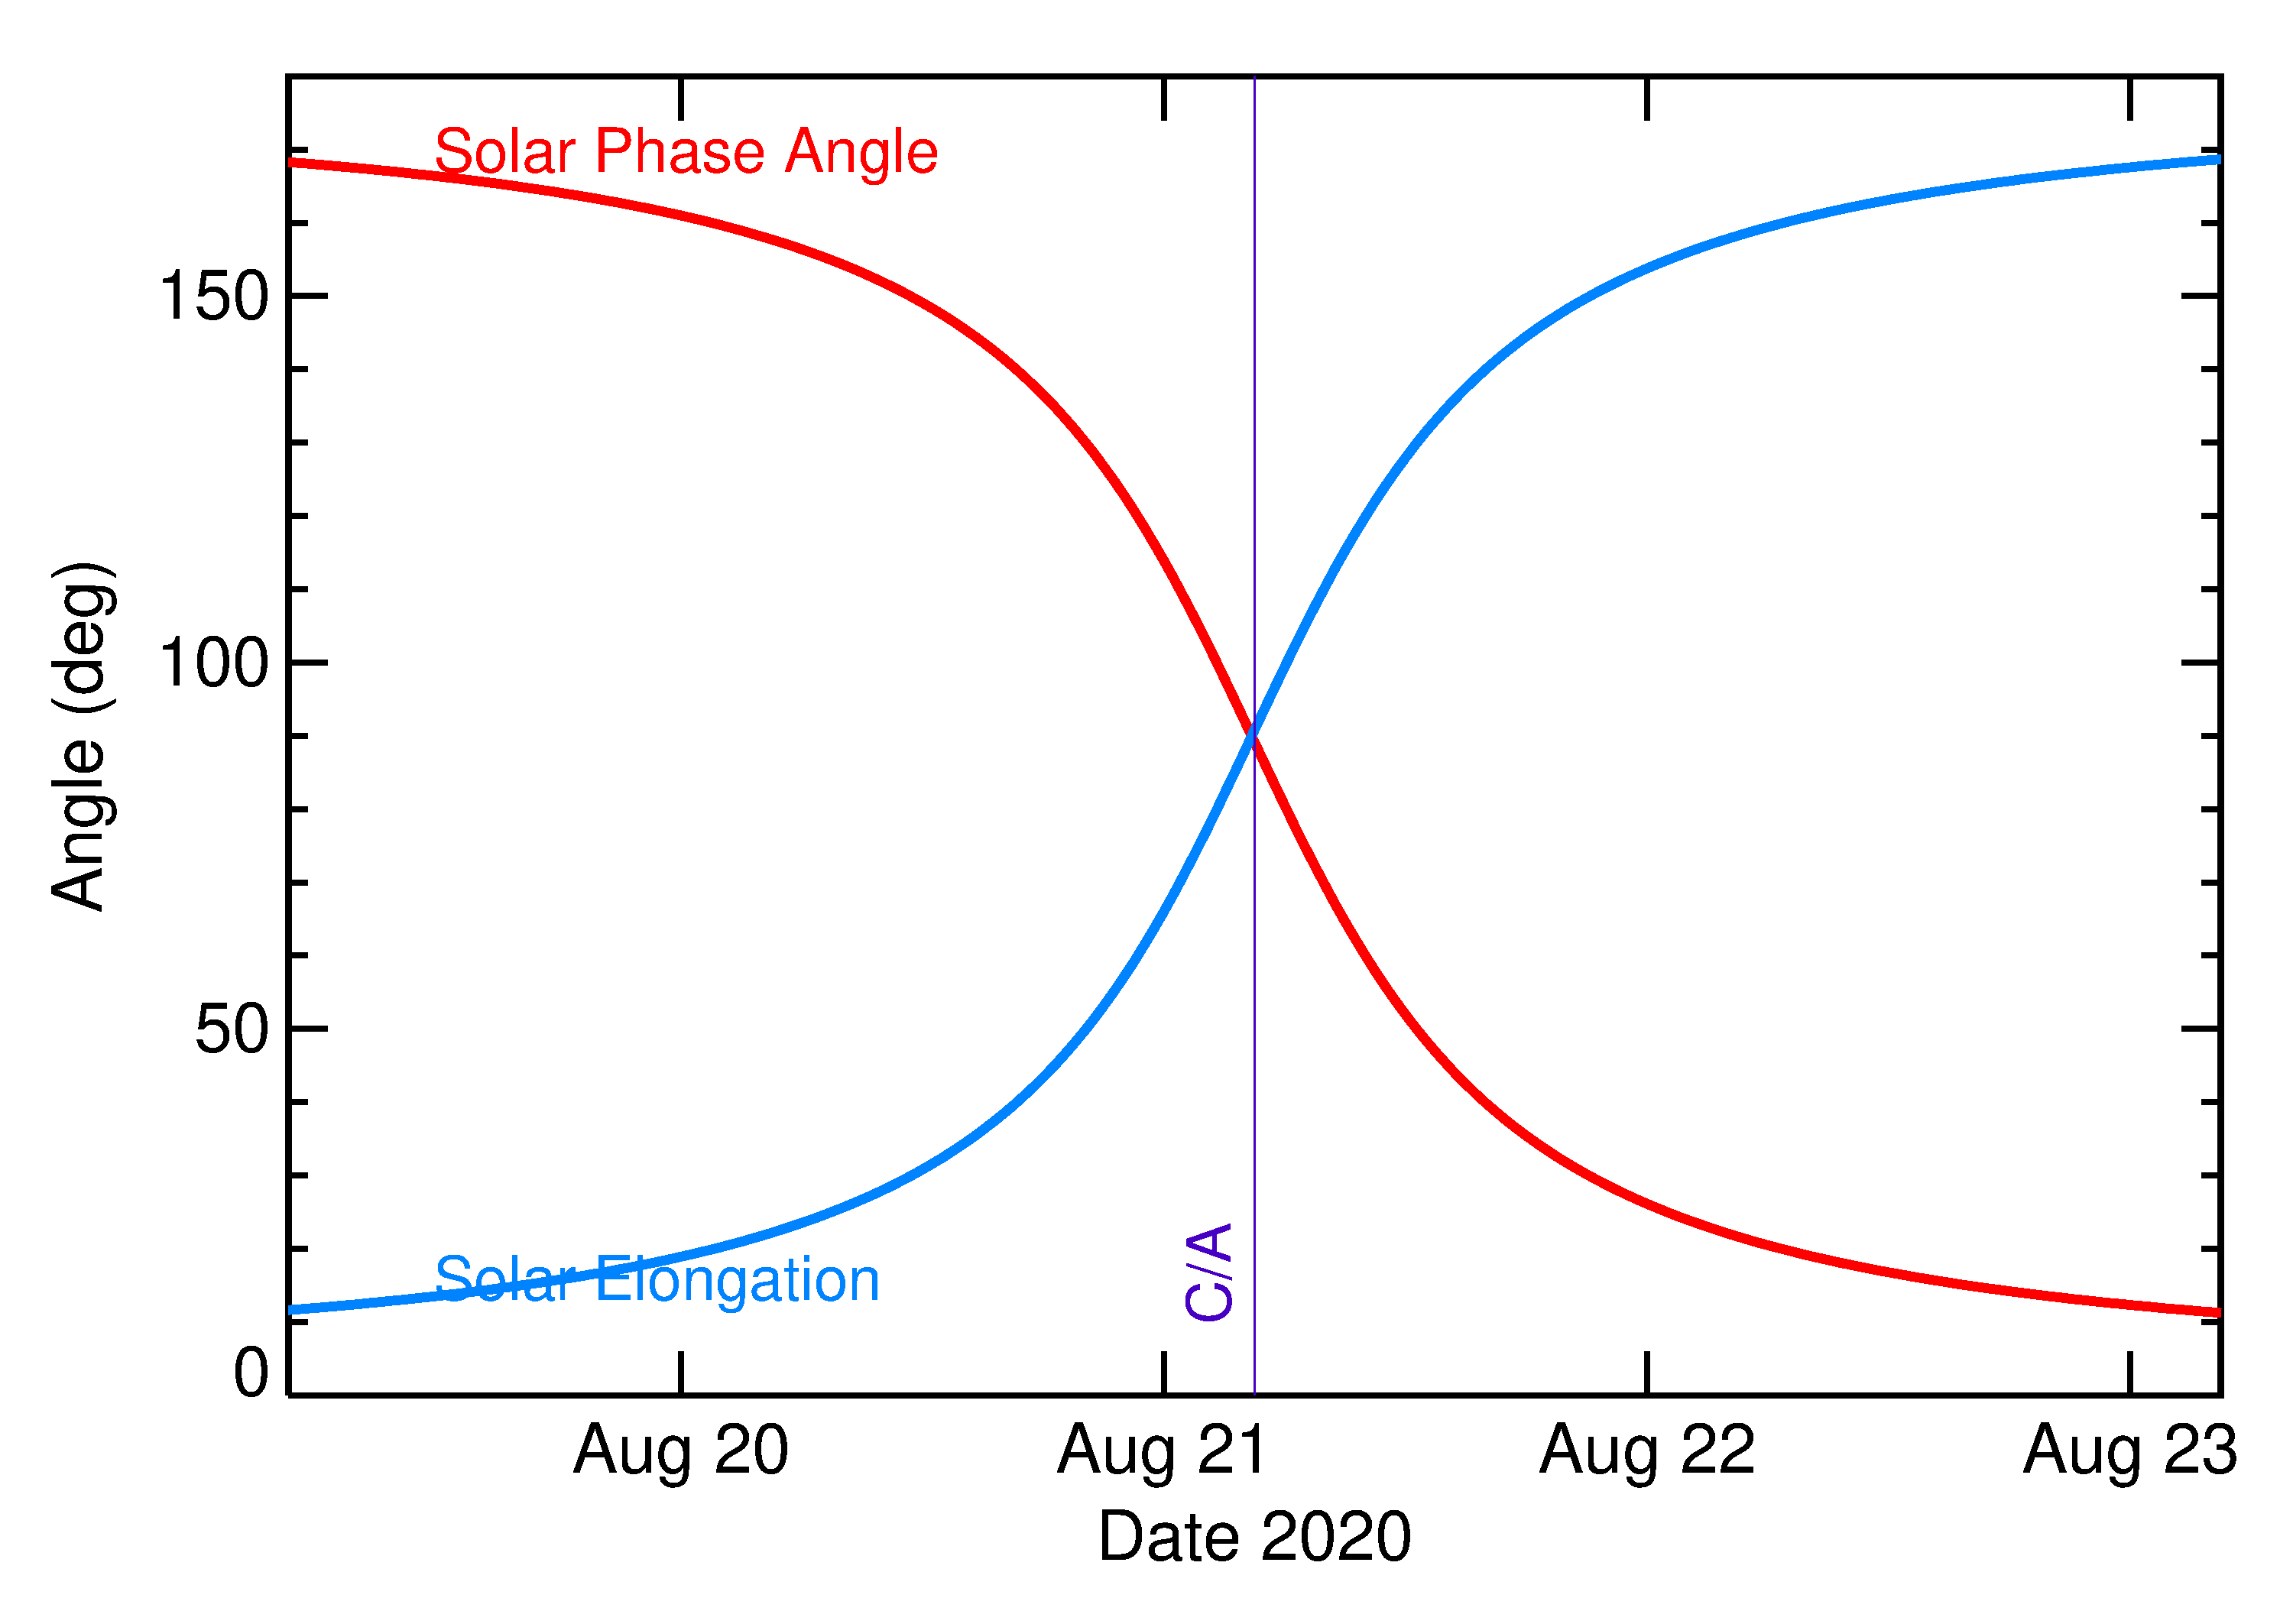 Solar Elongation and Solar Phase Angle of 2020 QN4 in the days around closest approach